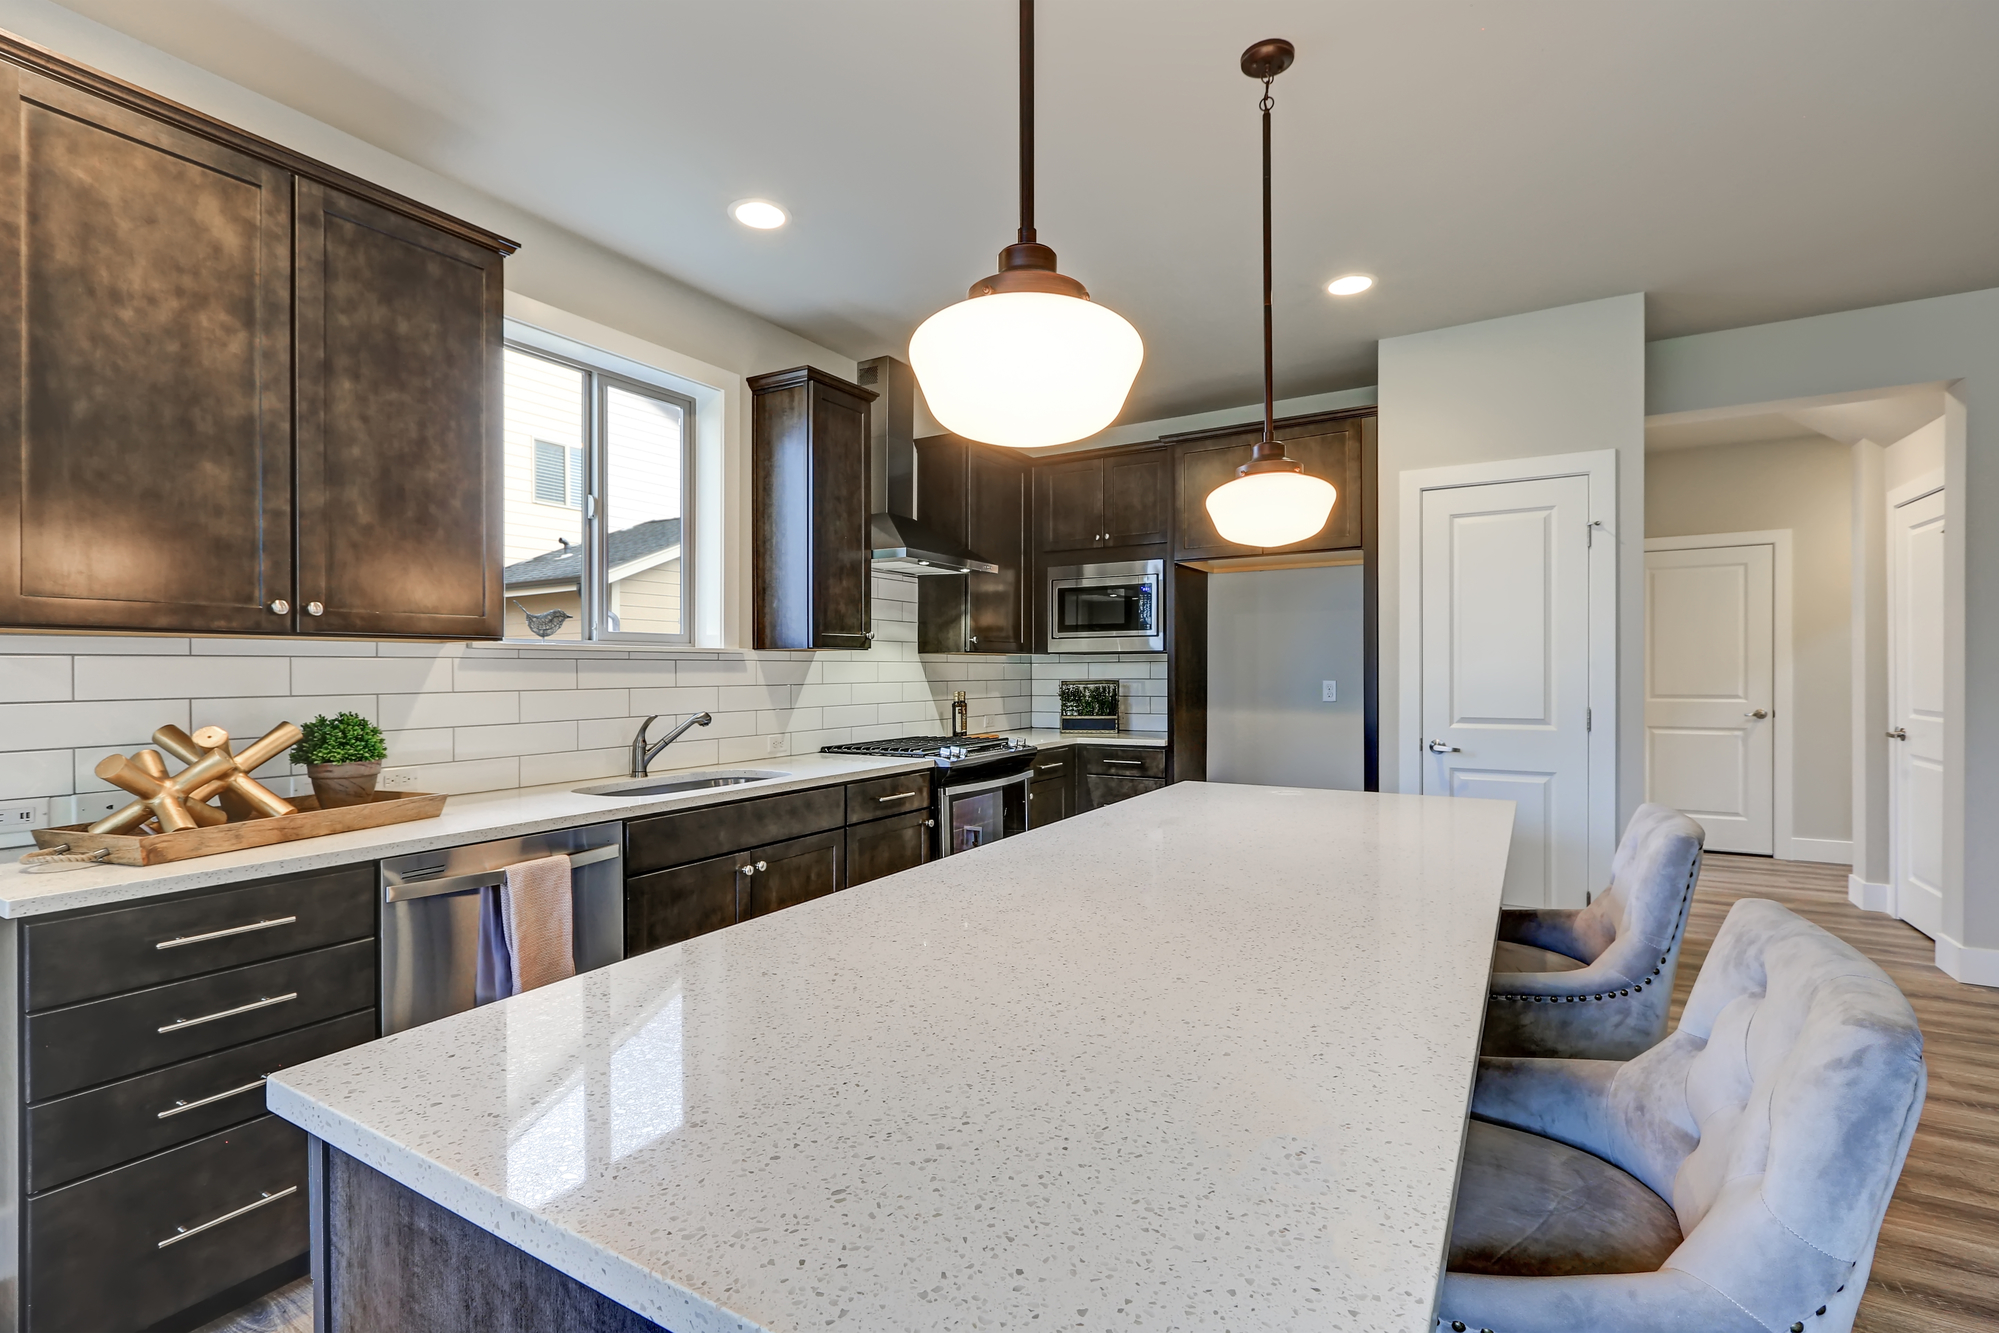 3 Great Stone Materials for Your Kitchen Countertops - Selective ...